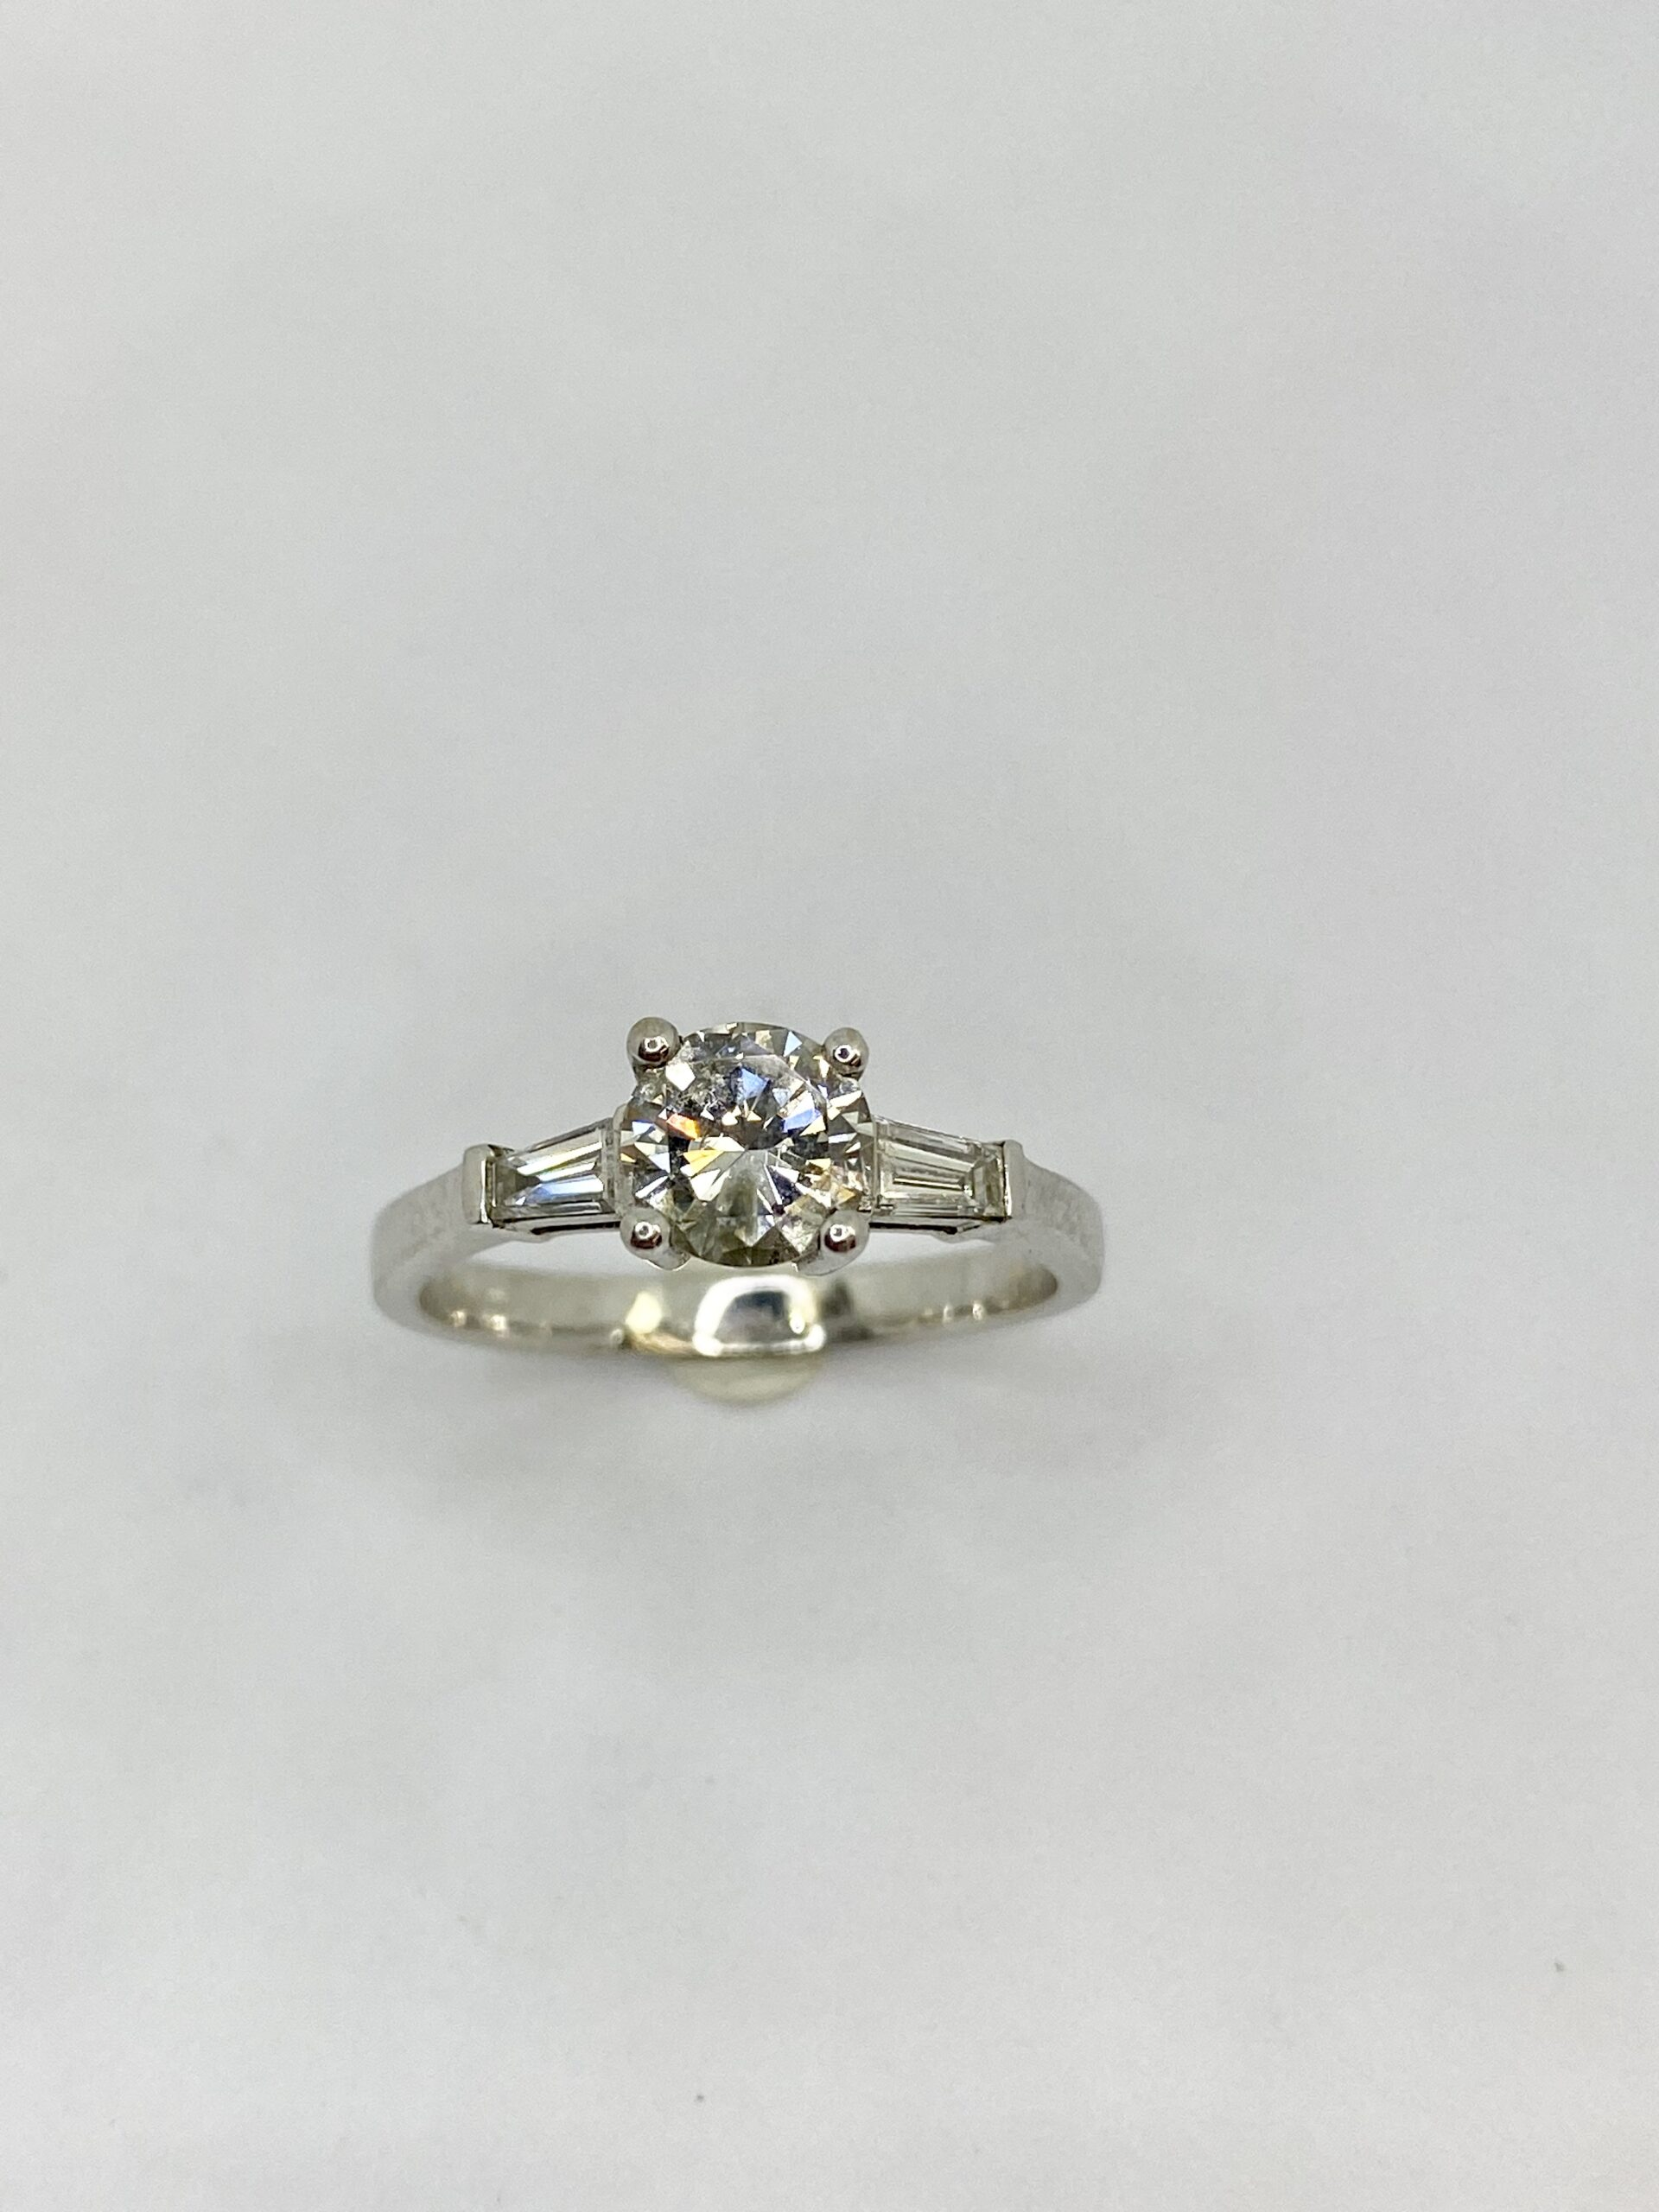 Tapered Baguette Round Diamond Engagement Ring By Design Jewellers Killarney Mall